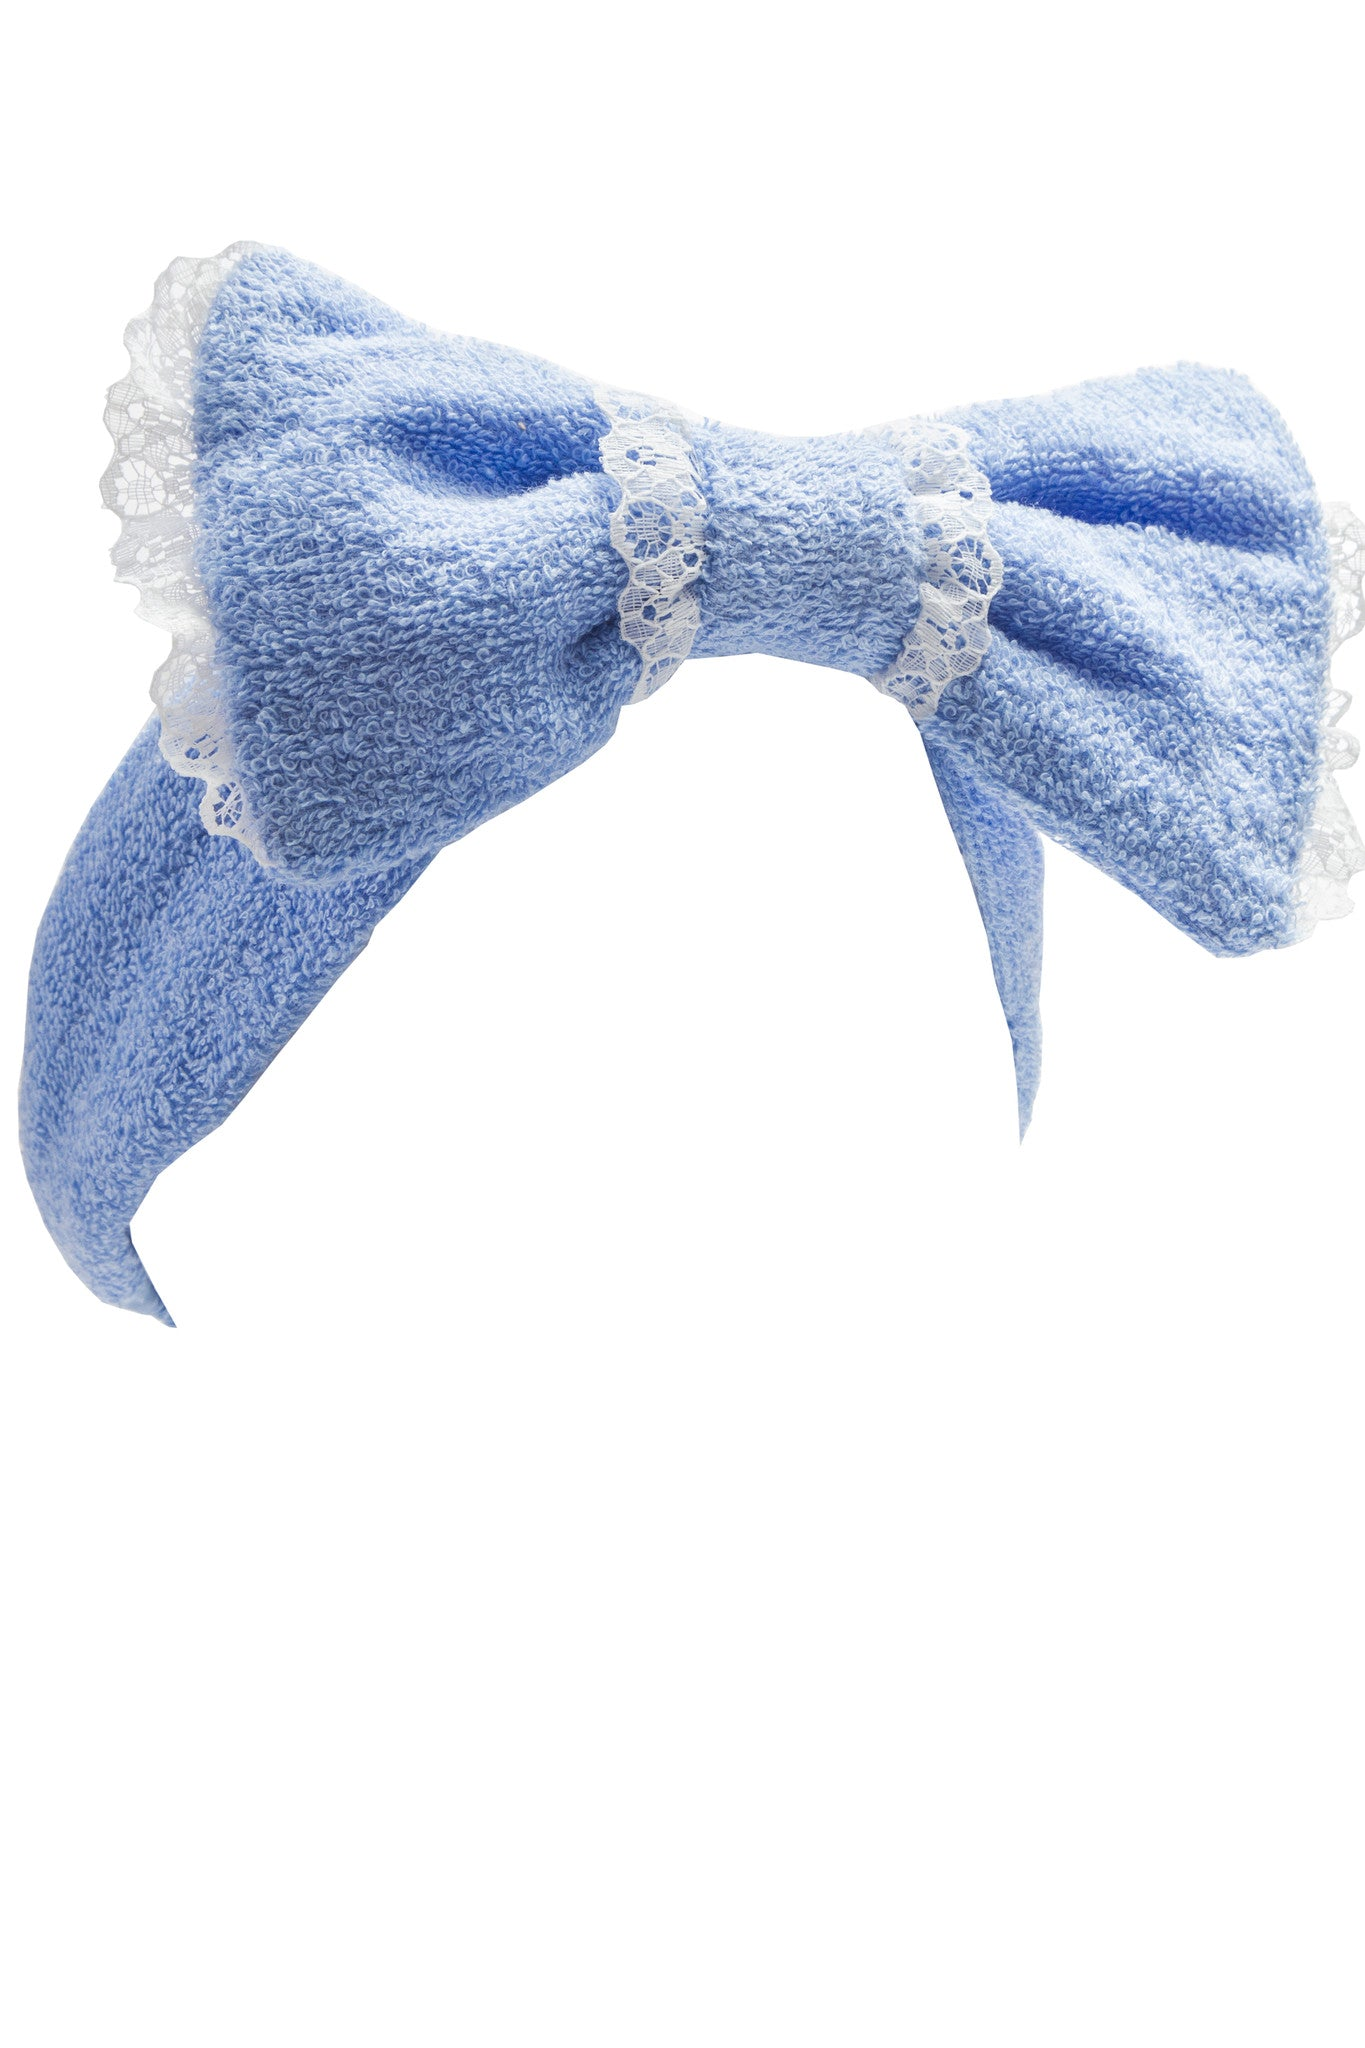 ... Flannel Bow Headband a5001c1e540